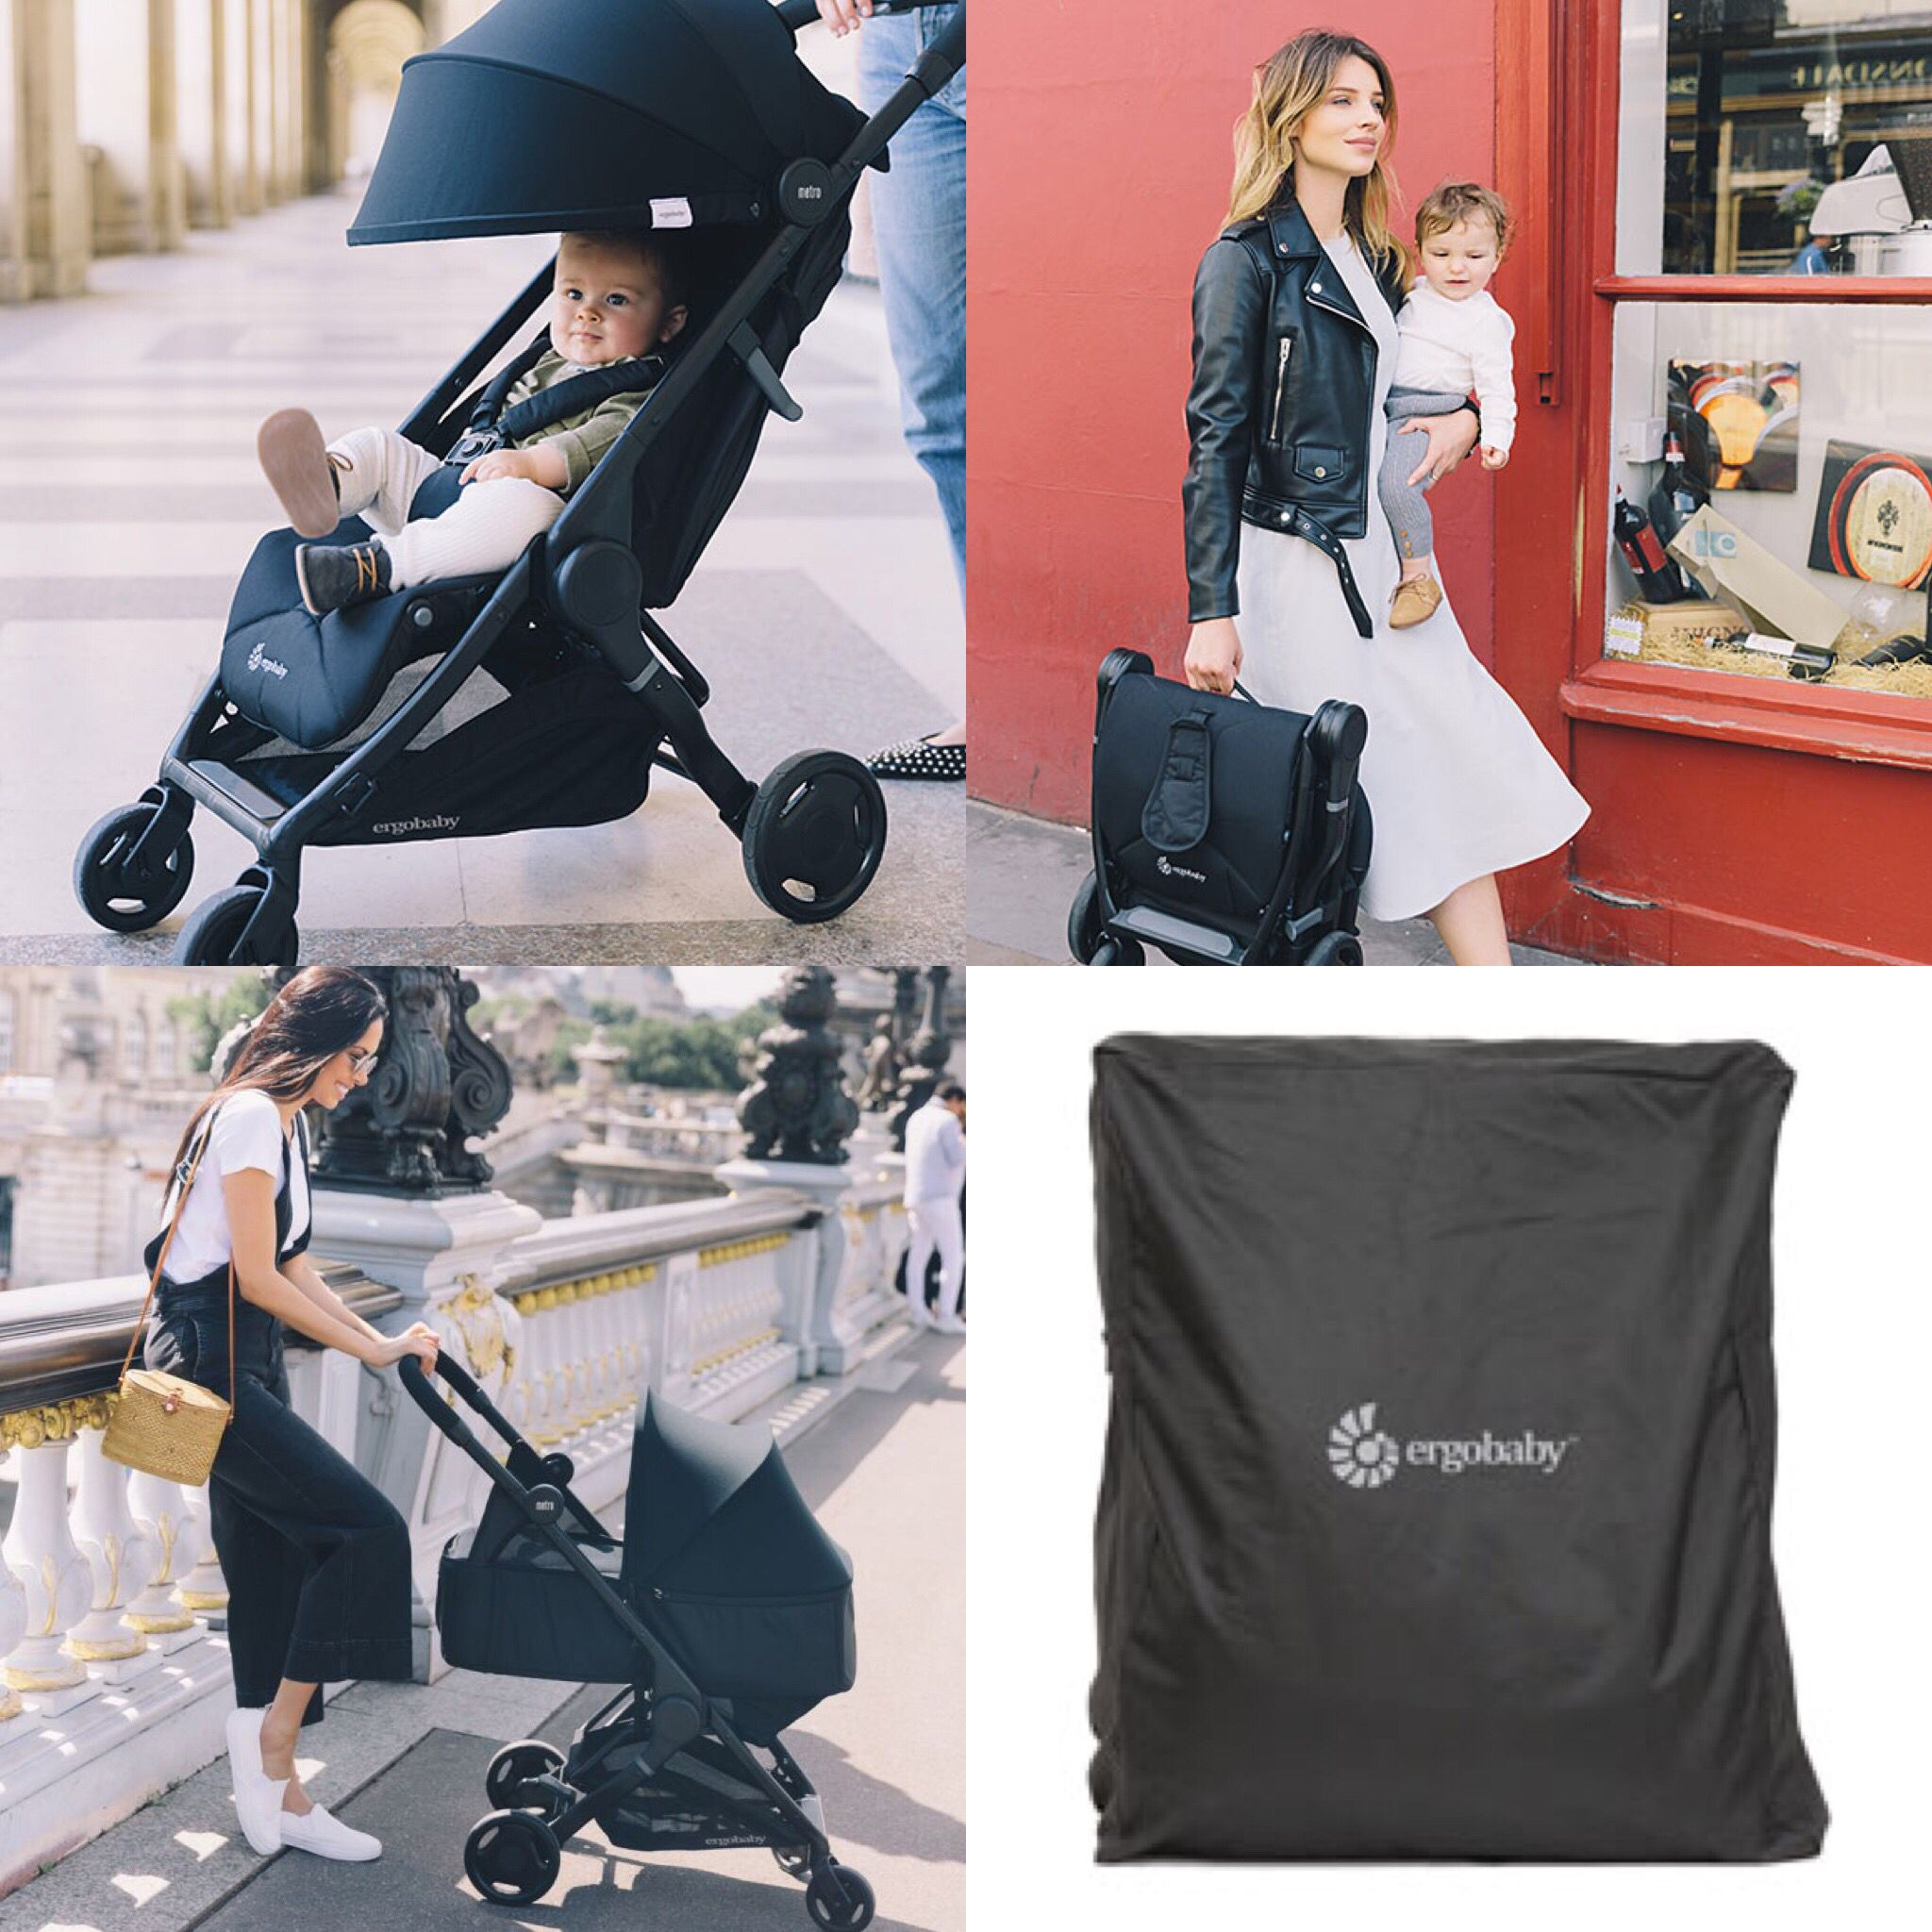 501881cc122 Checkout my review of the Ergobaby Metro Compact City Stroller